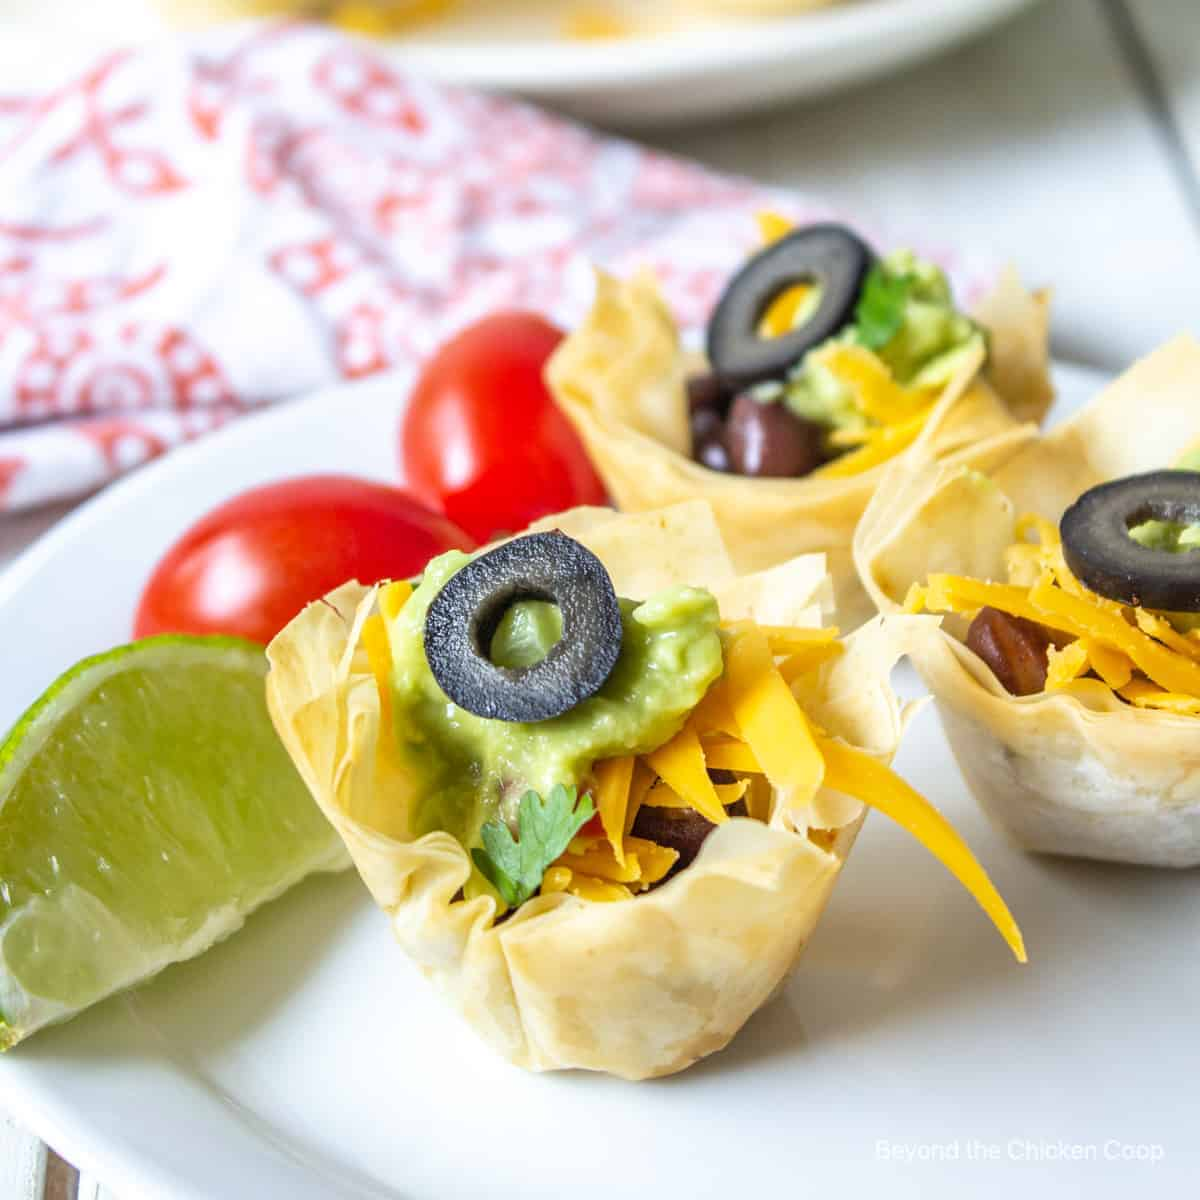 Crispy mini cups filled with black beans, cheese and guacamole and topped with a black olive.